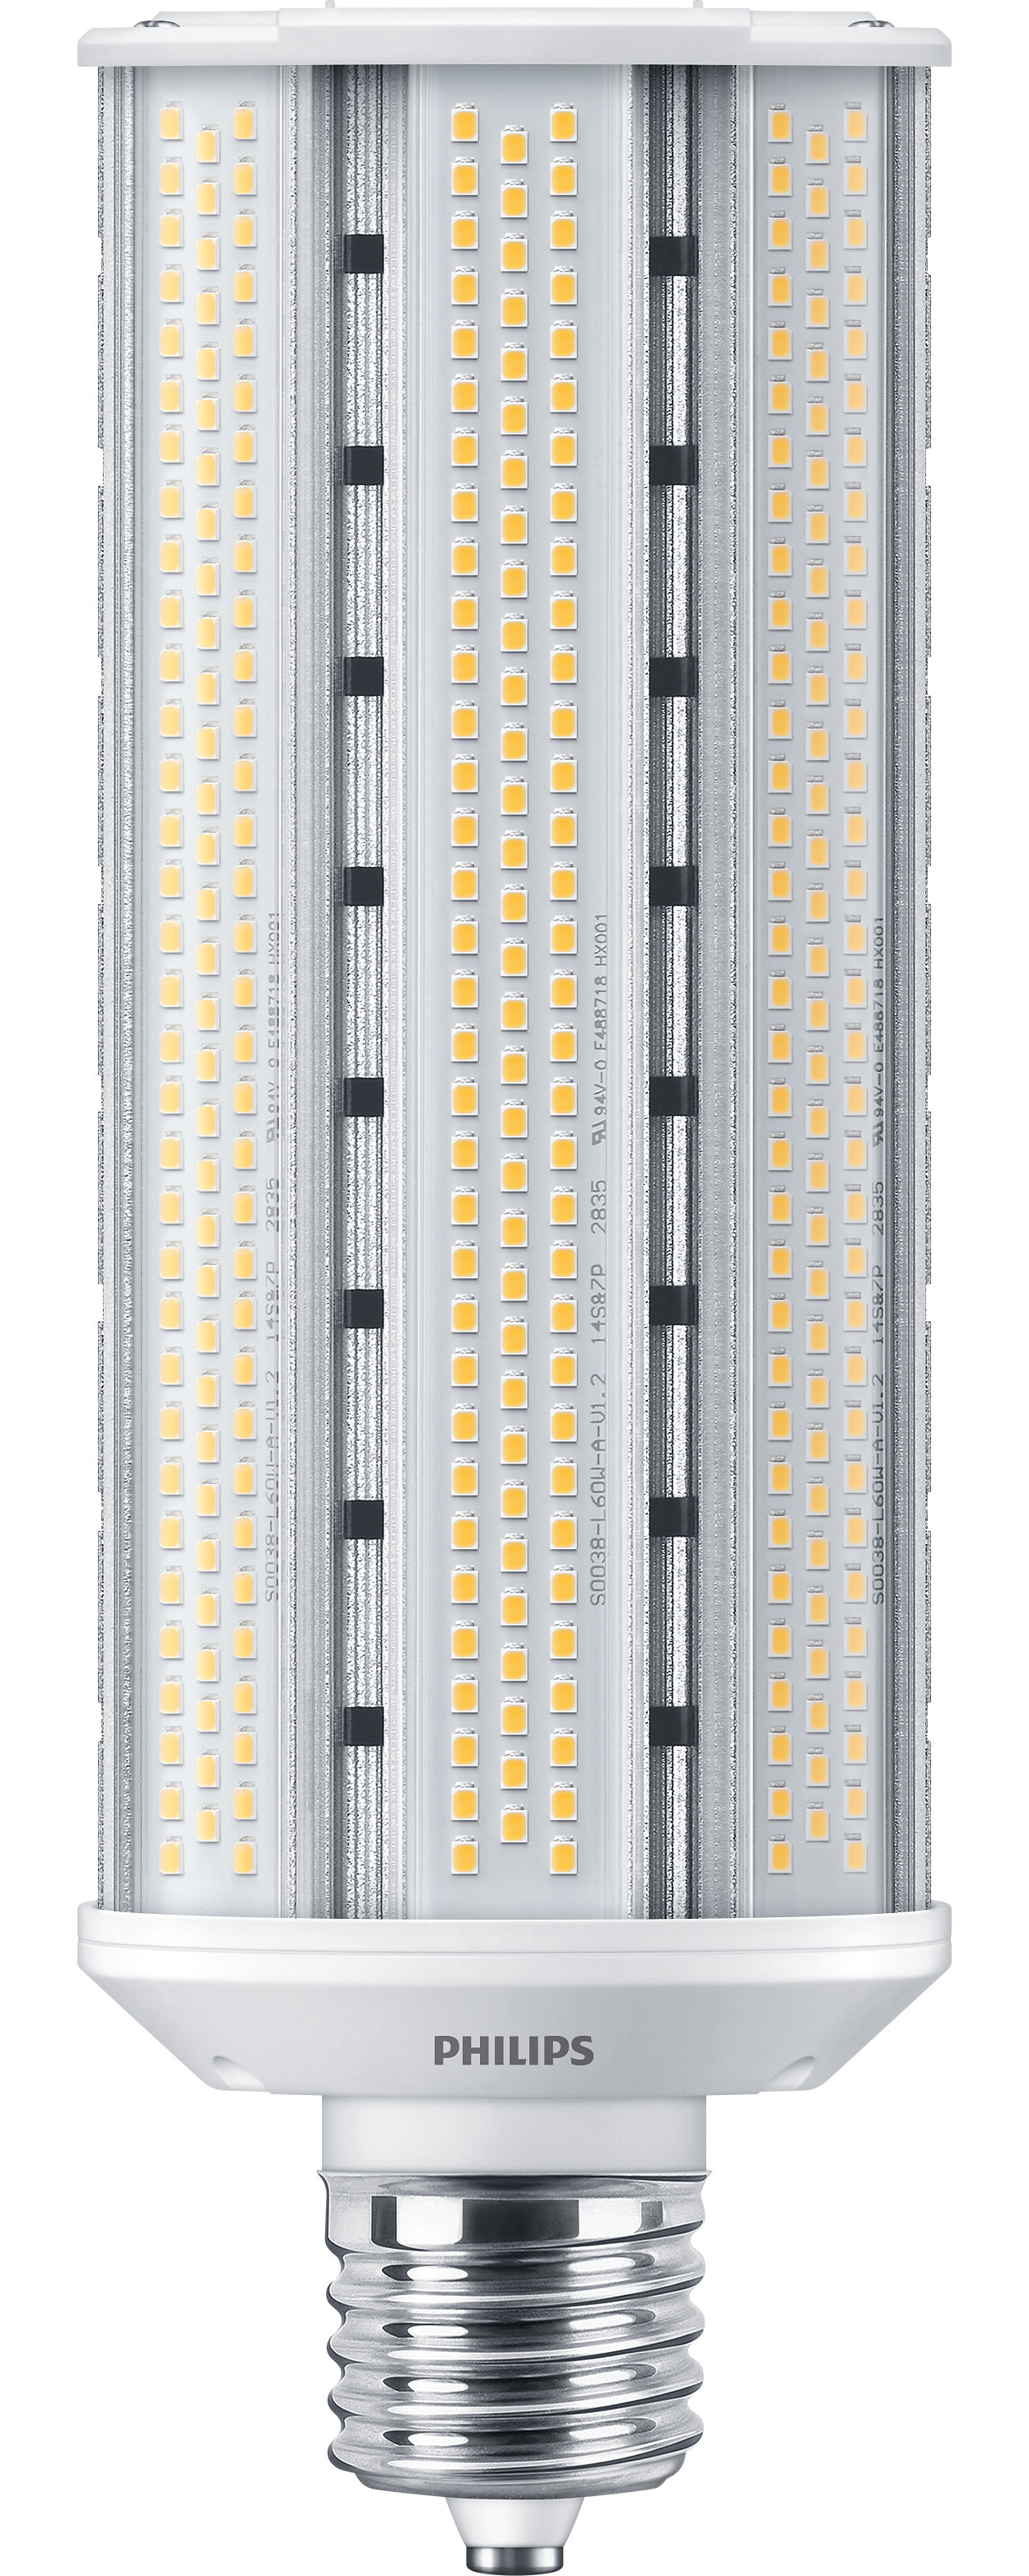 The professional LED HID replacement lamp, instant retrofit, instant savings.